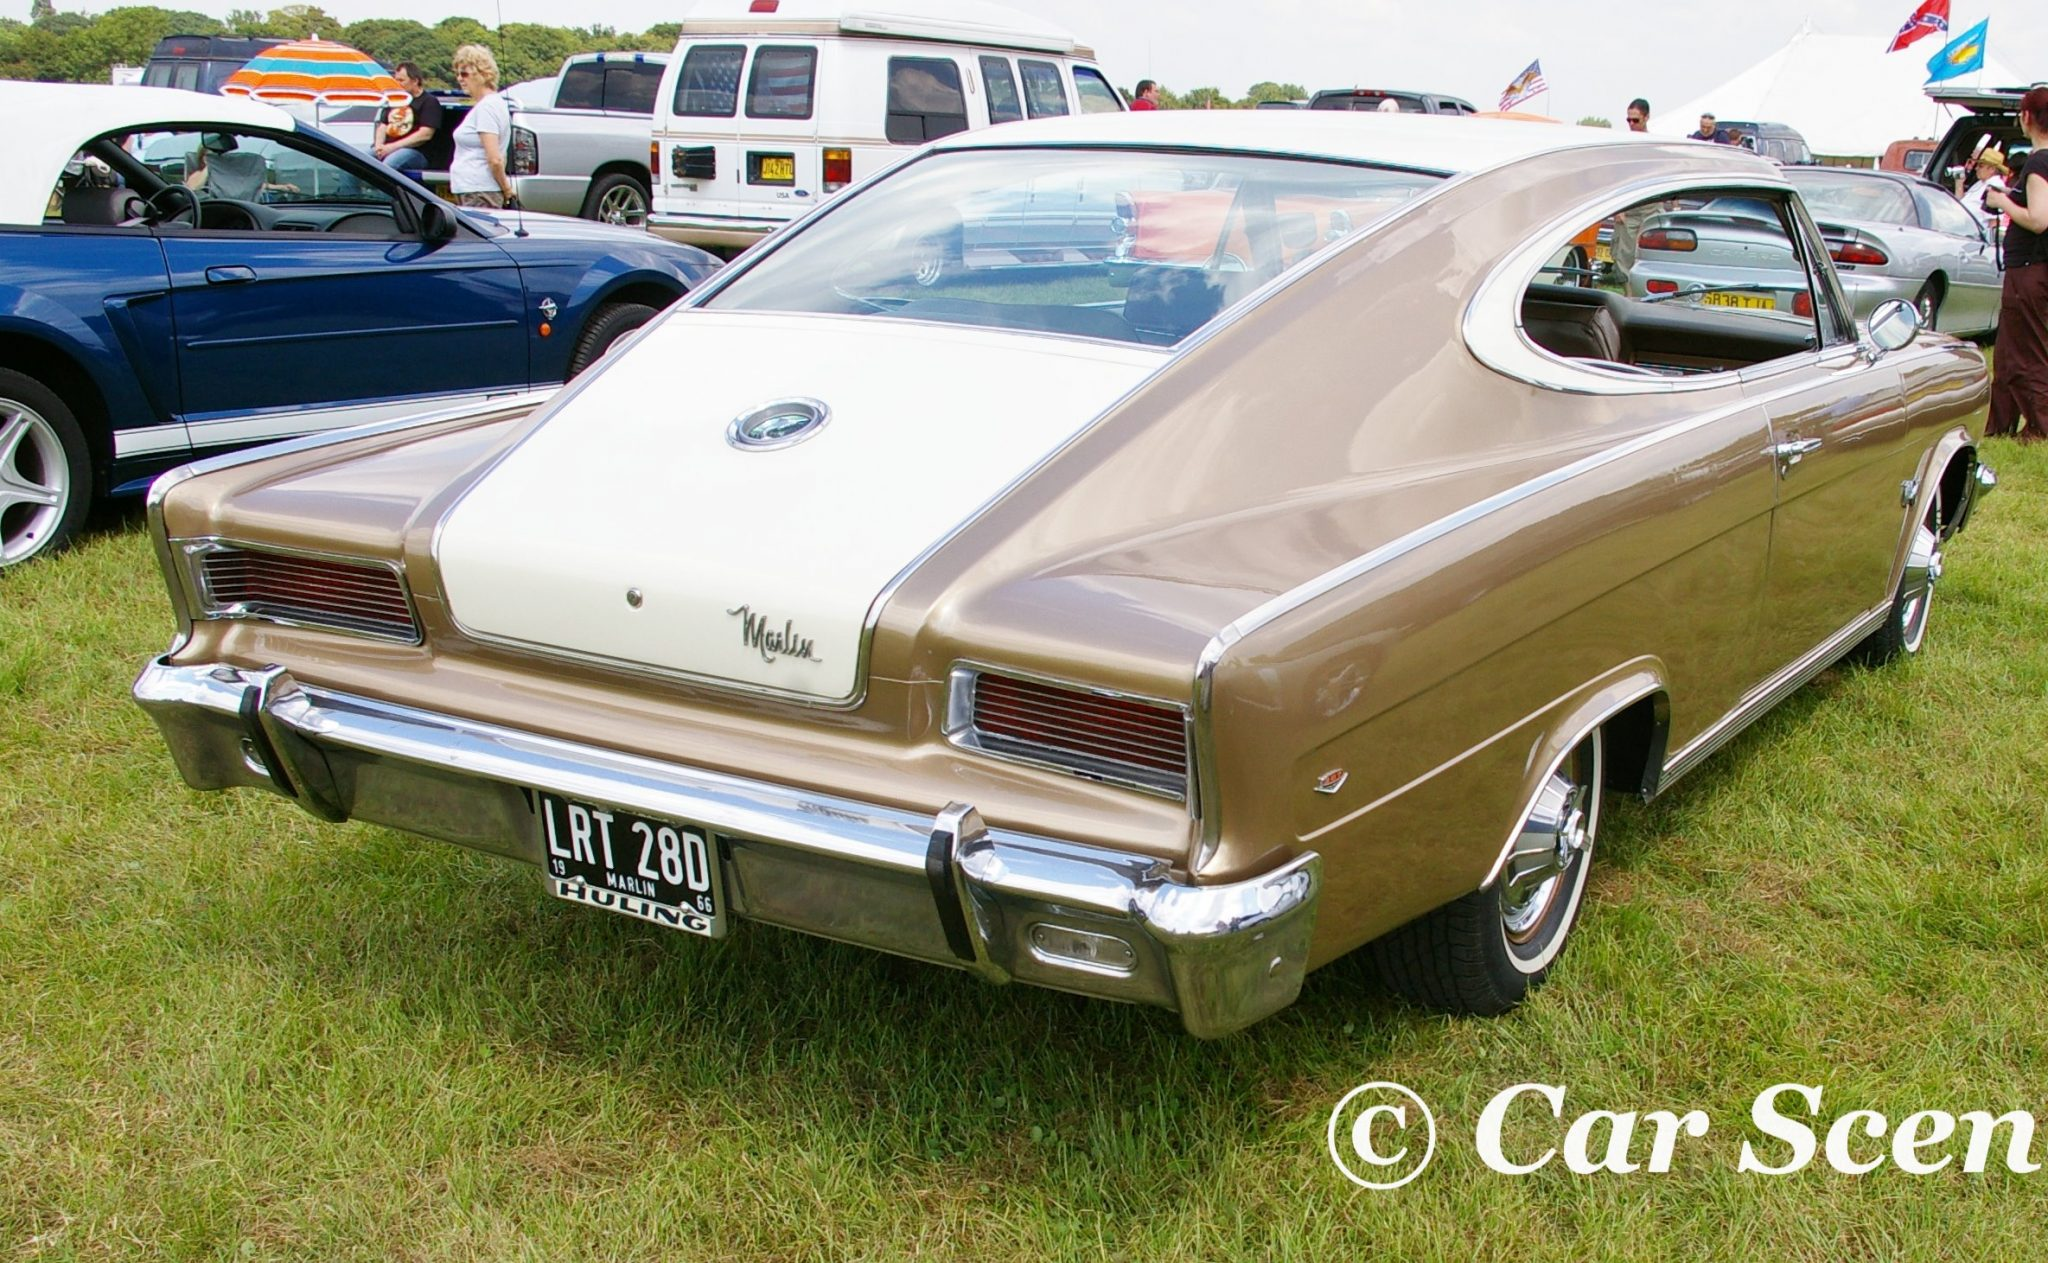 1966 AMC Marlin rear view